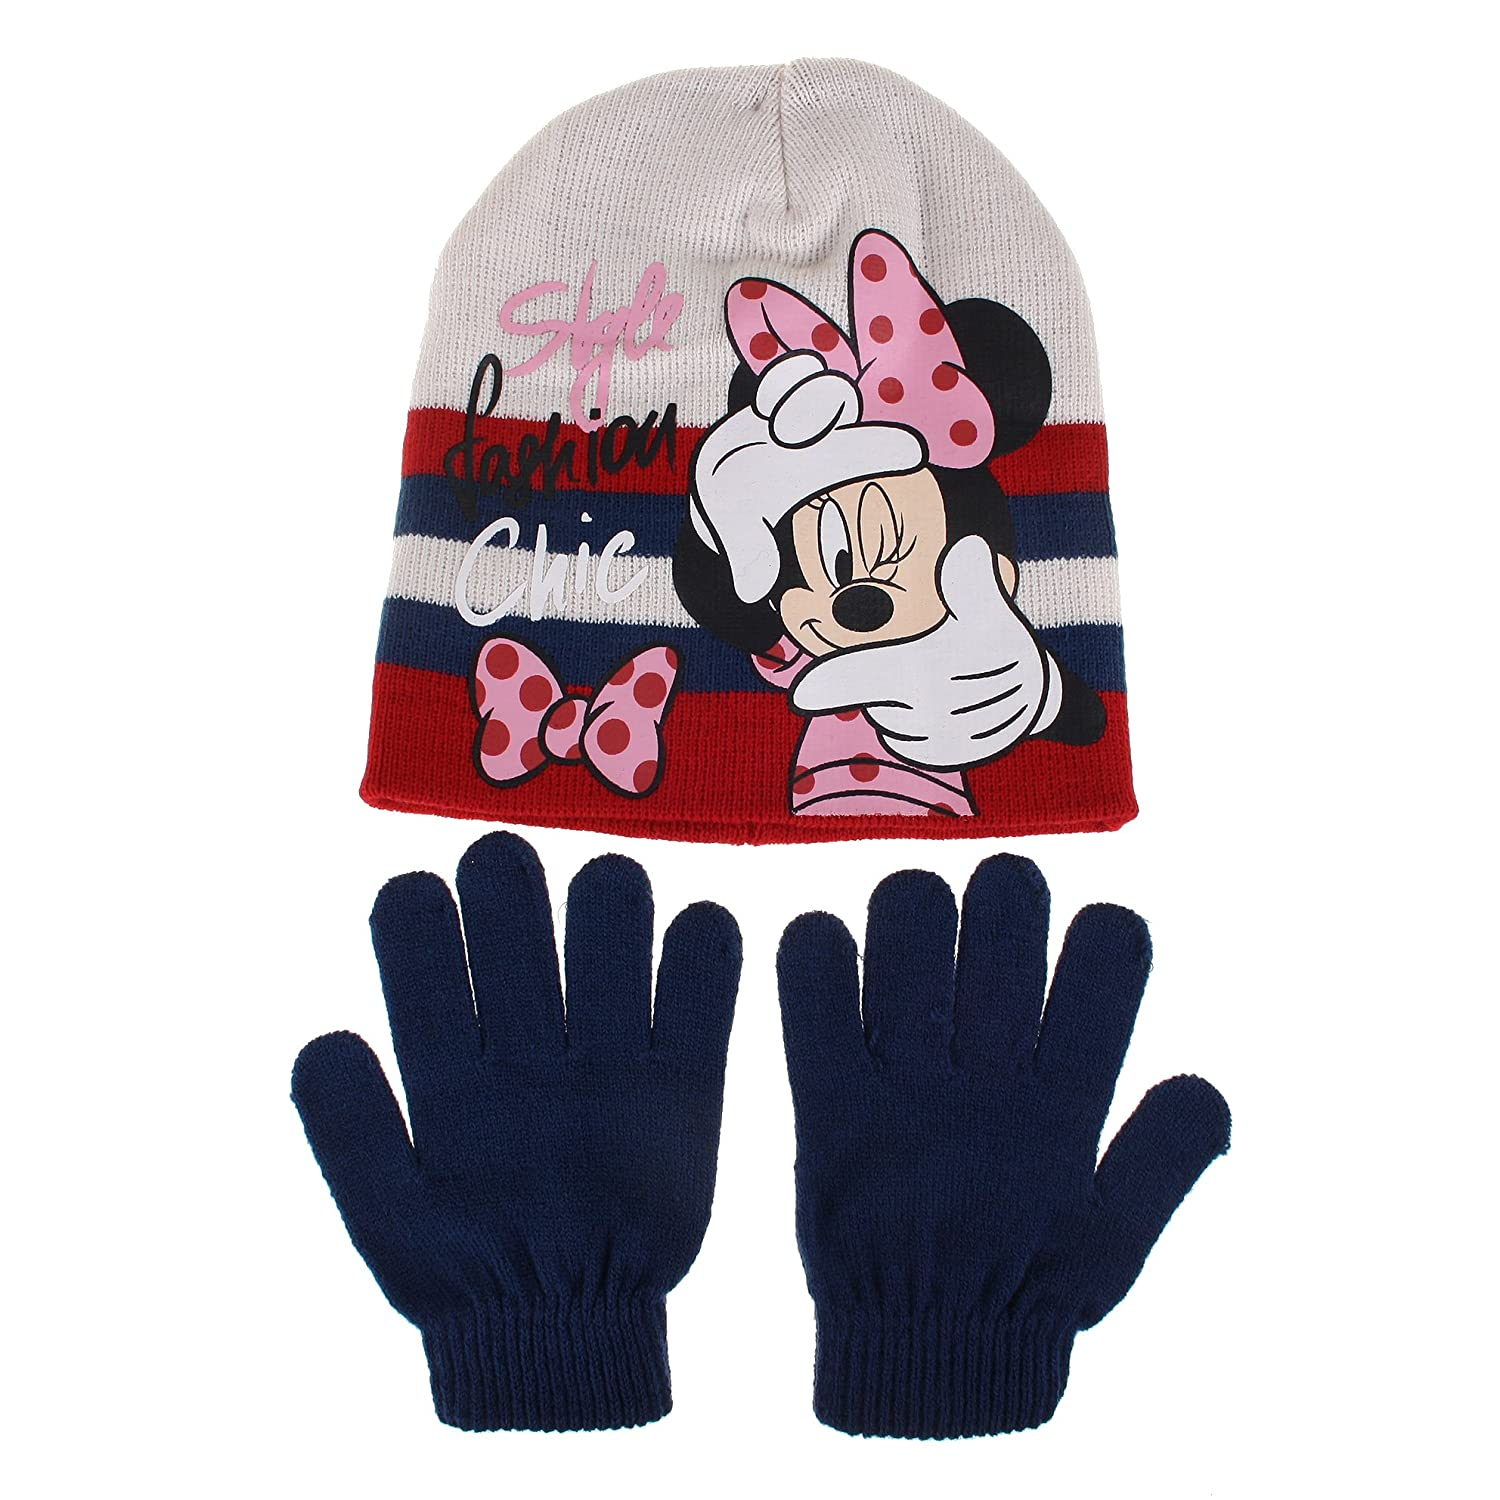 Disney Girl's Style Fashion Chic Scarf, Hat and Glove Set RFKSE901